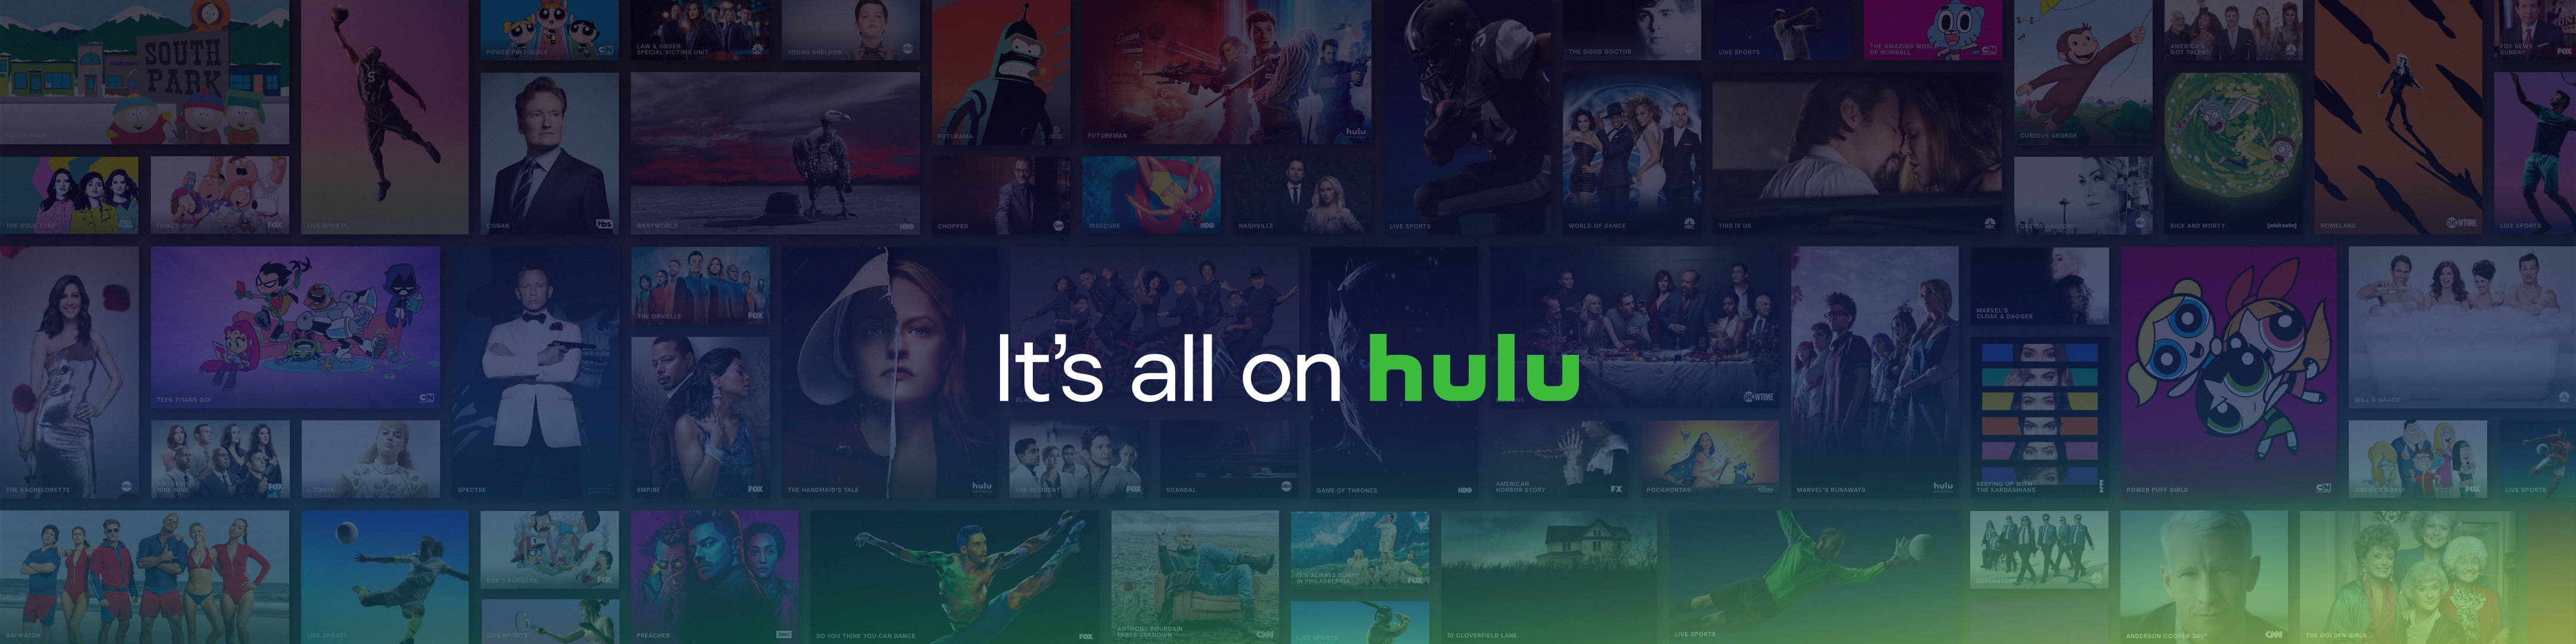 Hulu: Watch TV Shows & Movies - Revenue & Download estimates - Apple